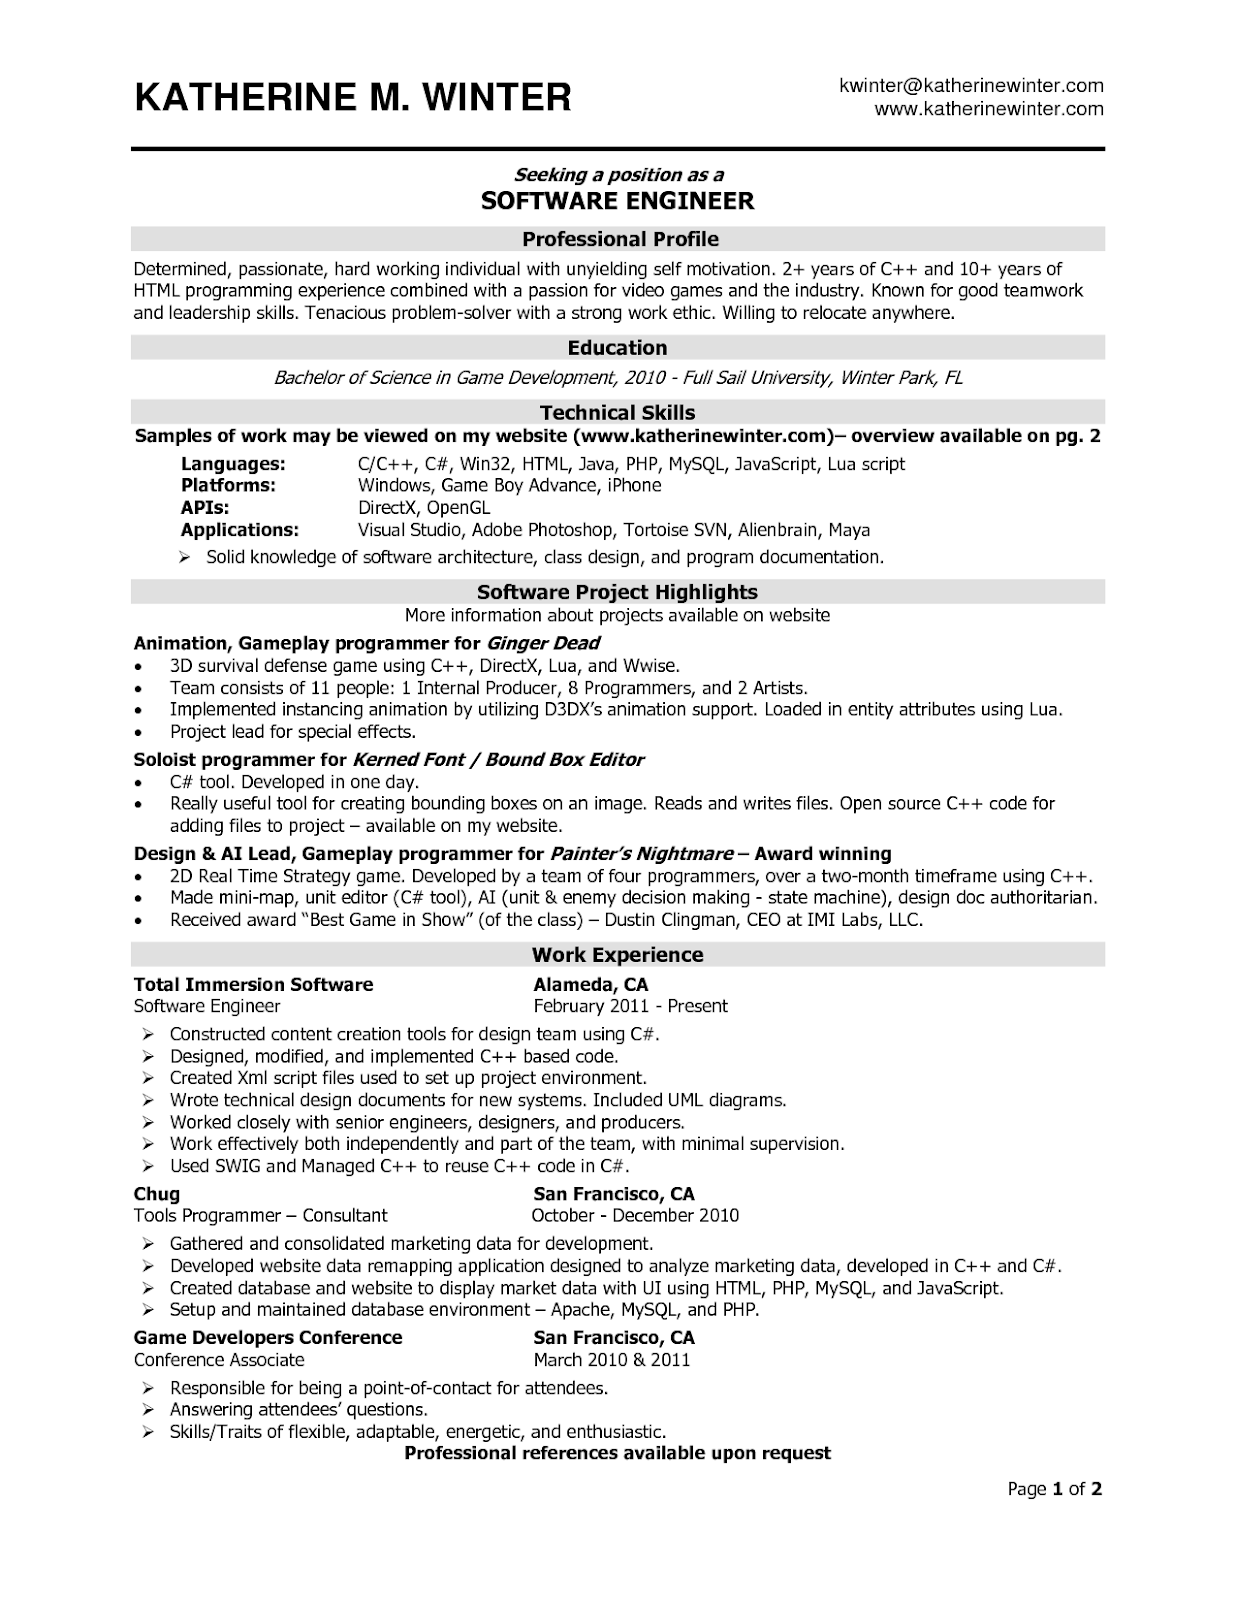 Software Engineer Resume Samples Sample Resumes